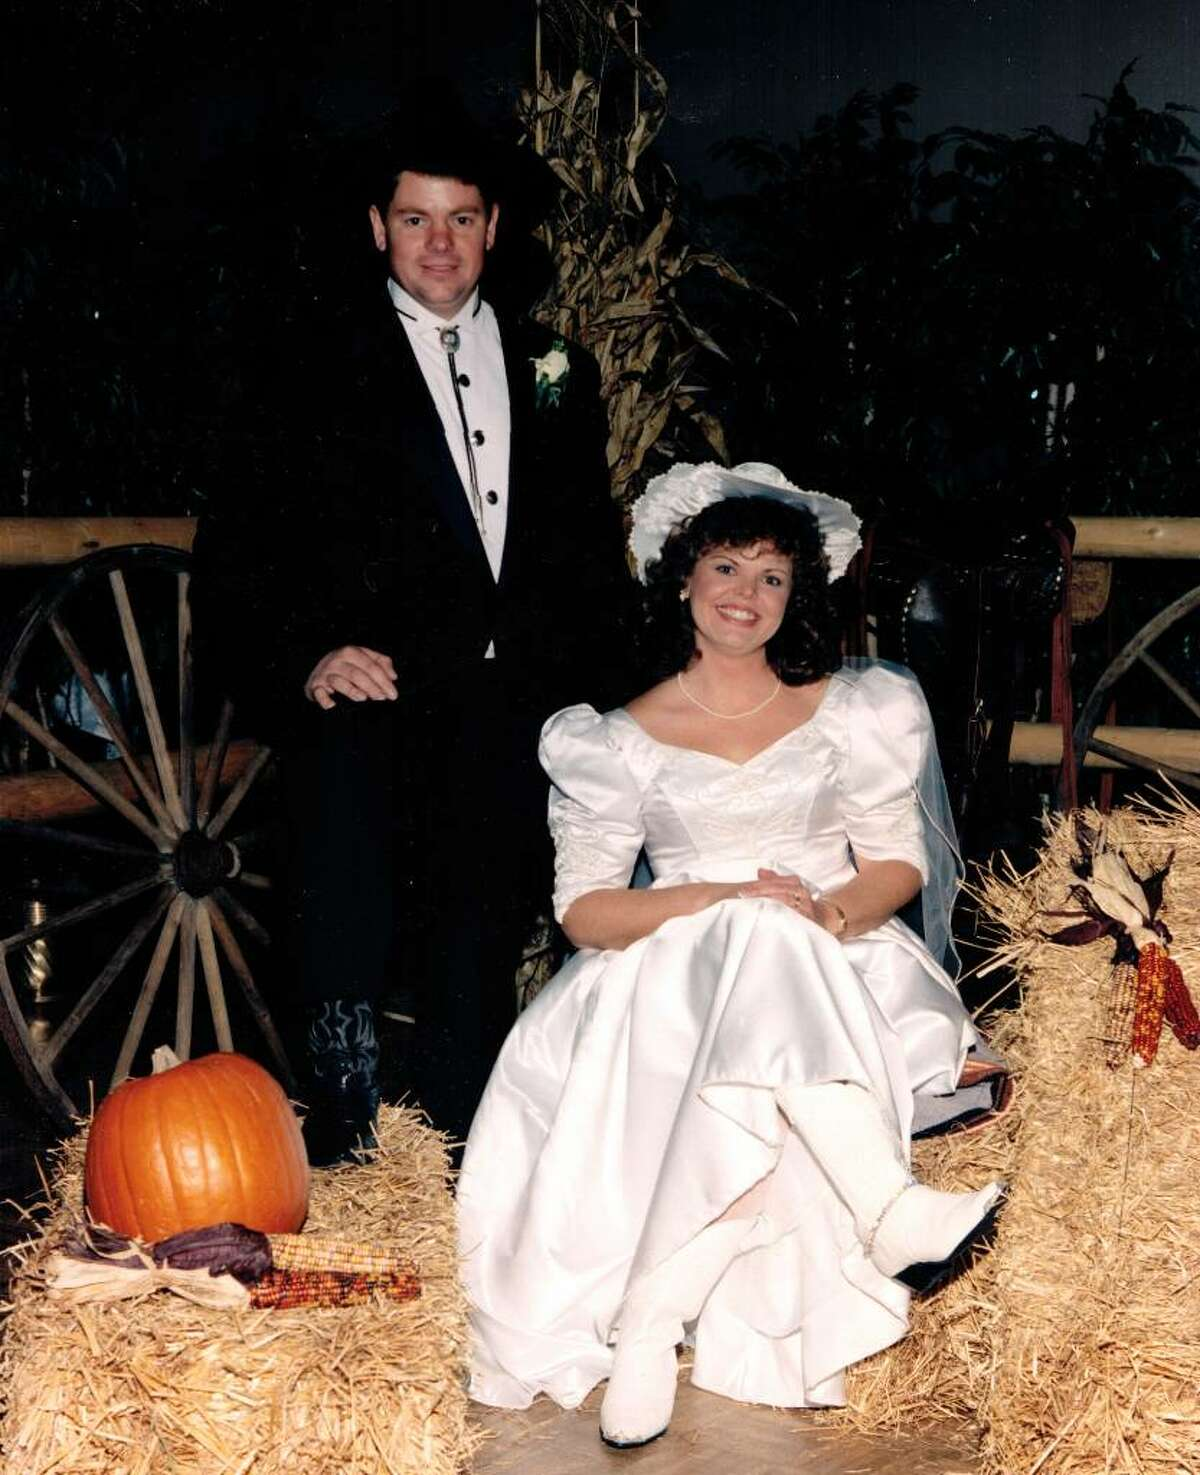 Don Butler and Barb Wicks were married Nov. 11, 1994. Their reception at the Fireside Inn in Newtown included lessons for the guests in line dancing and partner dancing.